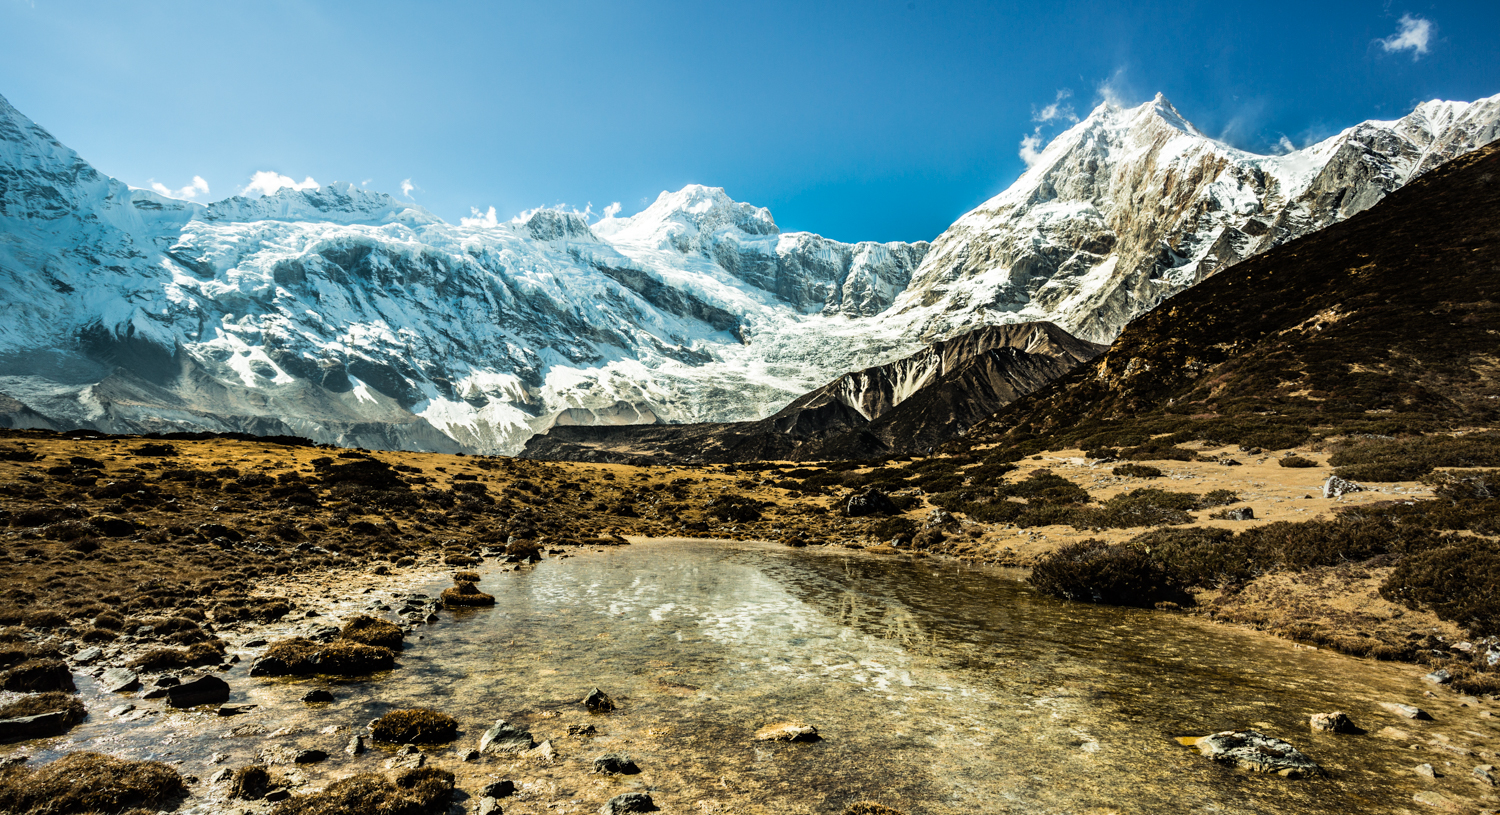 A section of the Manaslu massif. Manaslu, recognizable by its doubled-edged peaks, is on the far right, .